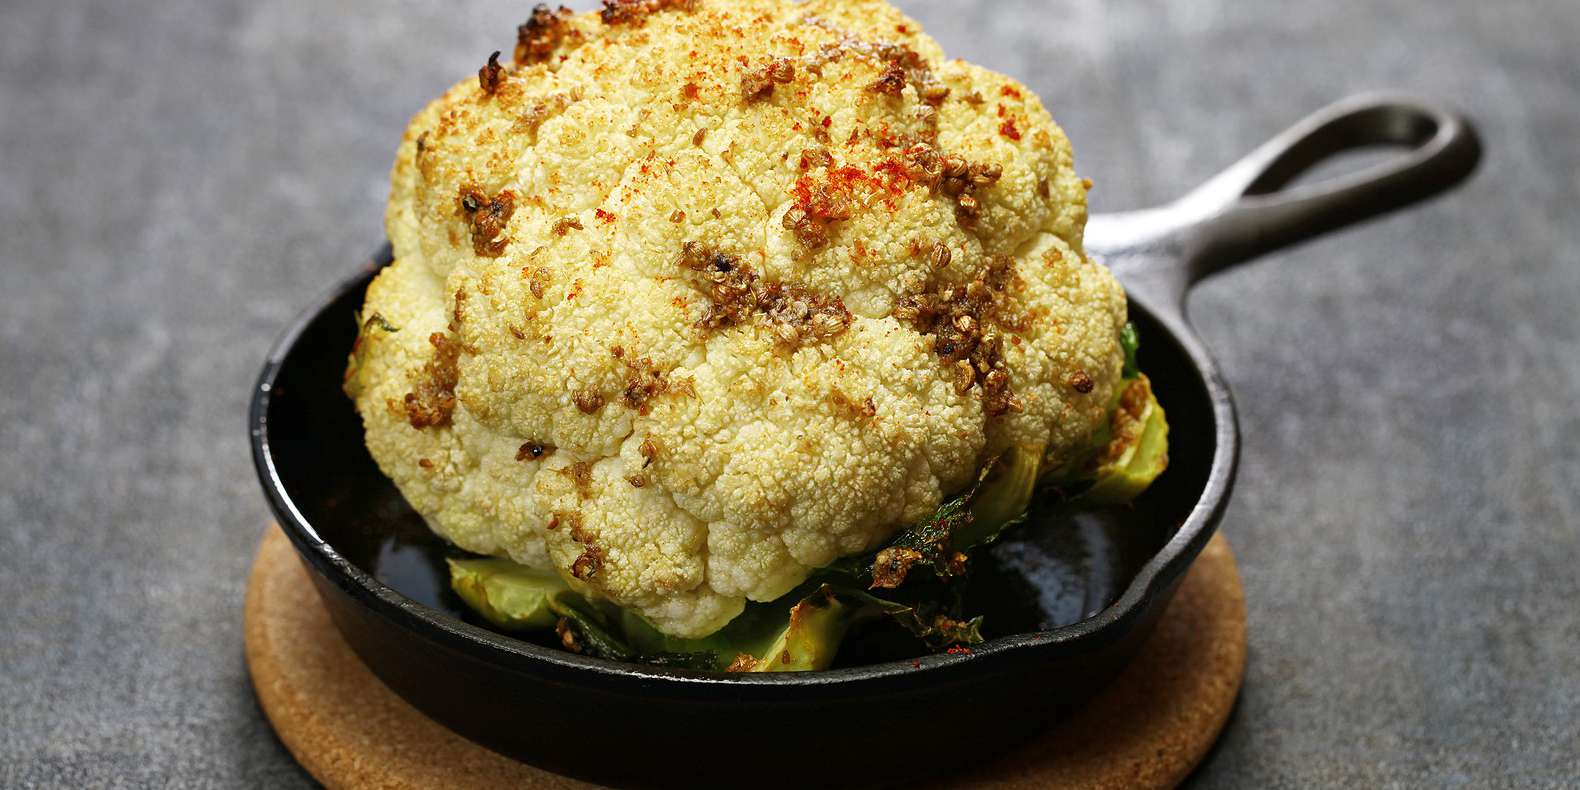 Honey Mustard Roasted Cauliflower with Herb Sauce